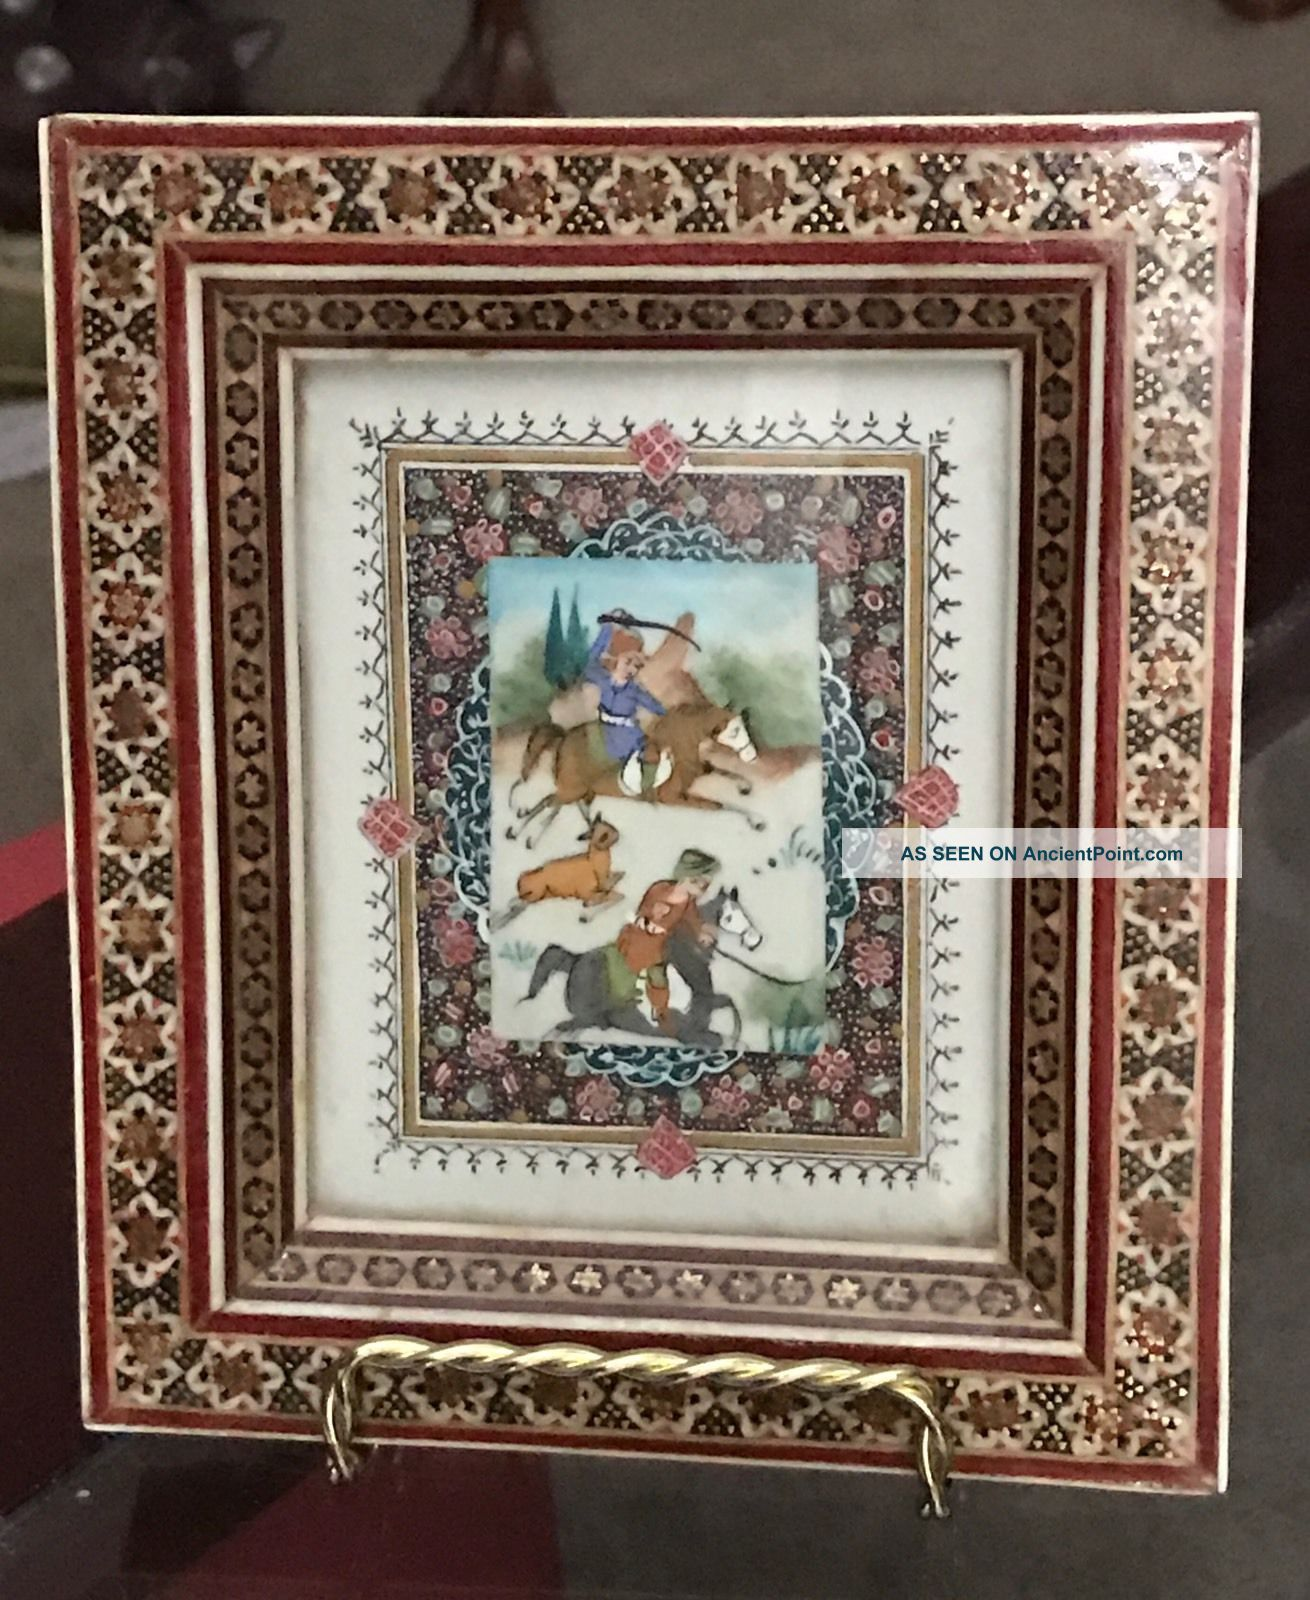 Antique - Vintage Middle Eastern - Persian Tile,  Hunting Scene,  Framed Tiles photo